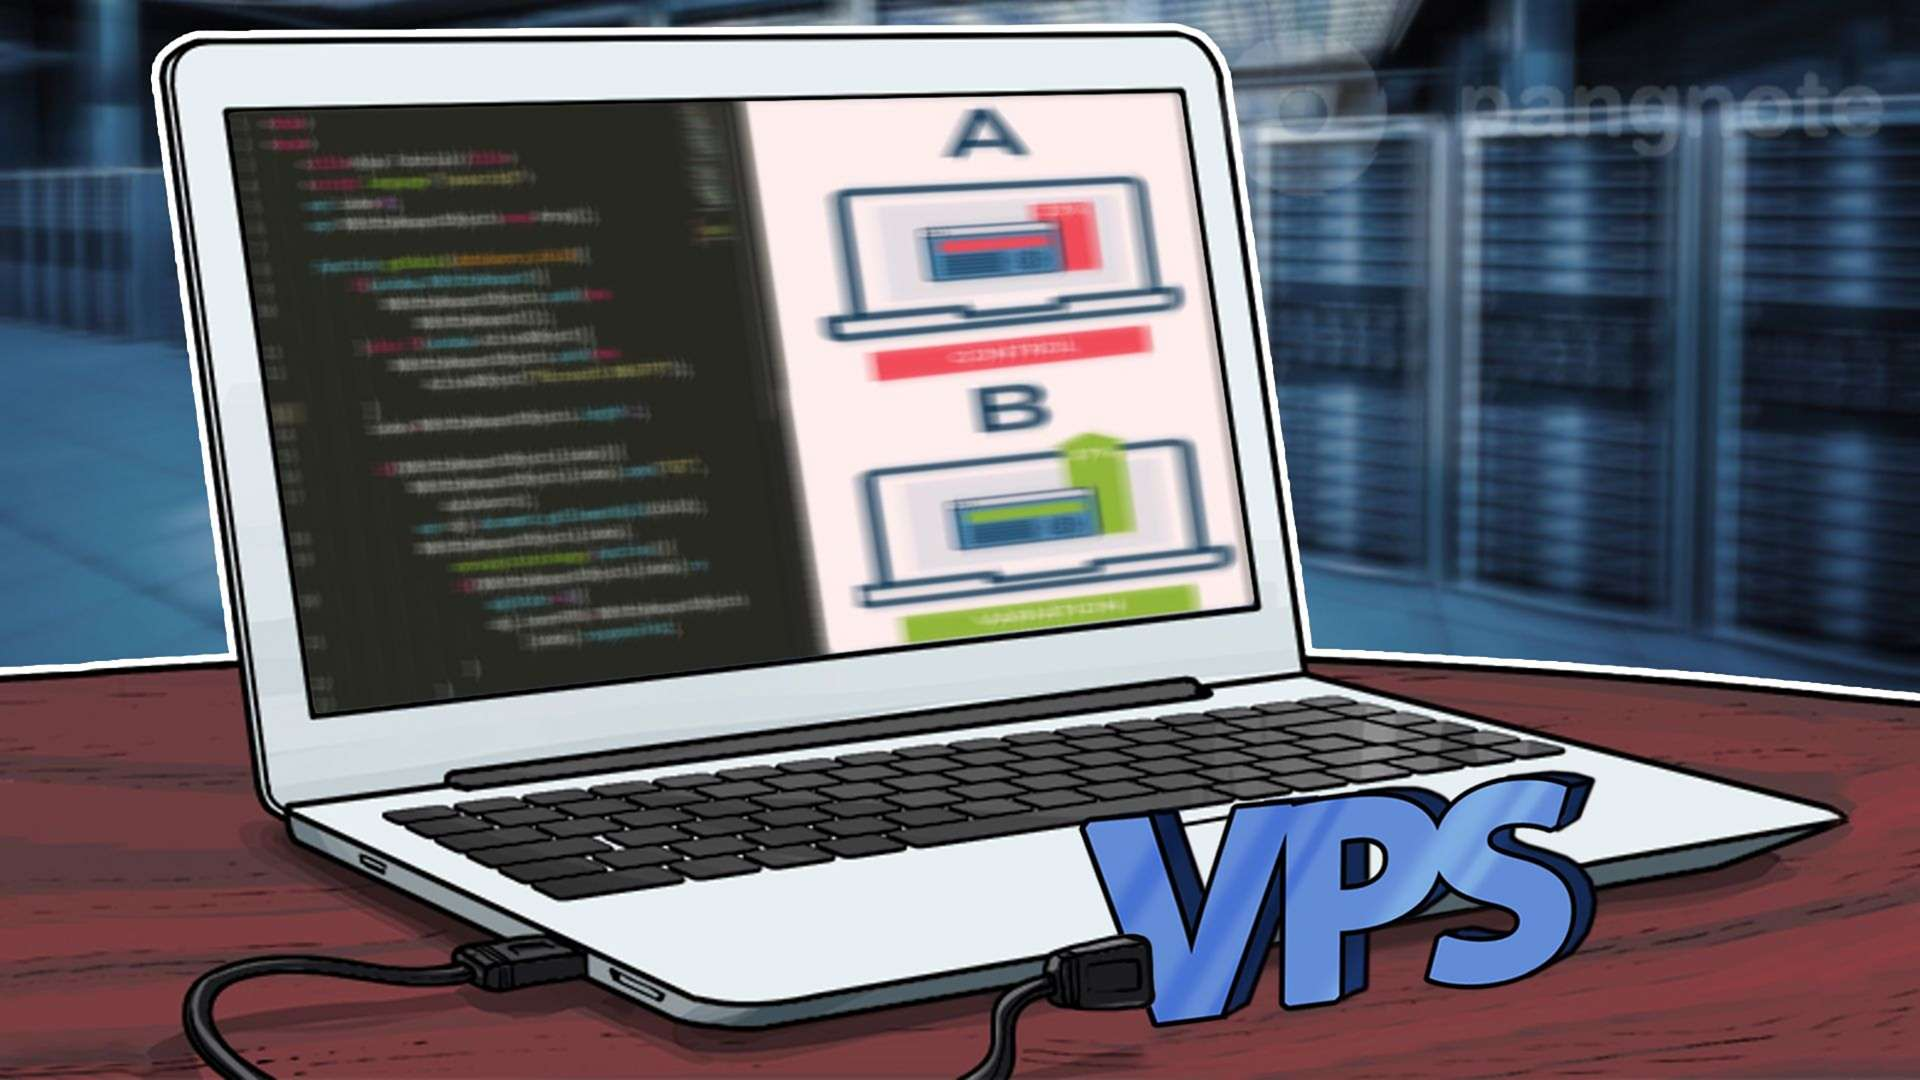 VPS server uses for development and testing